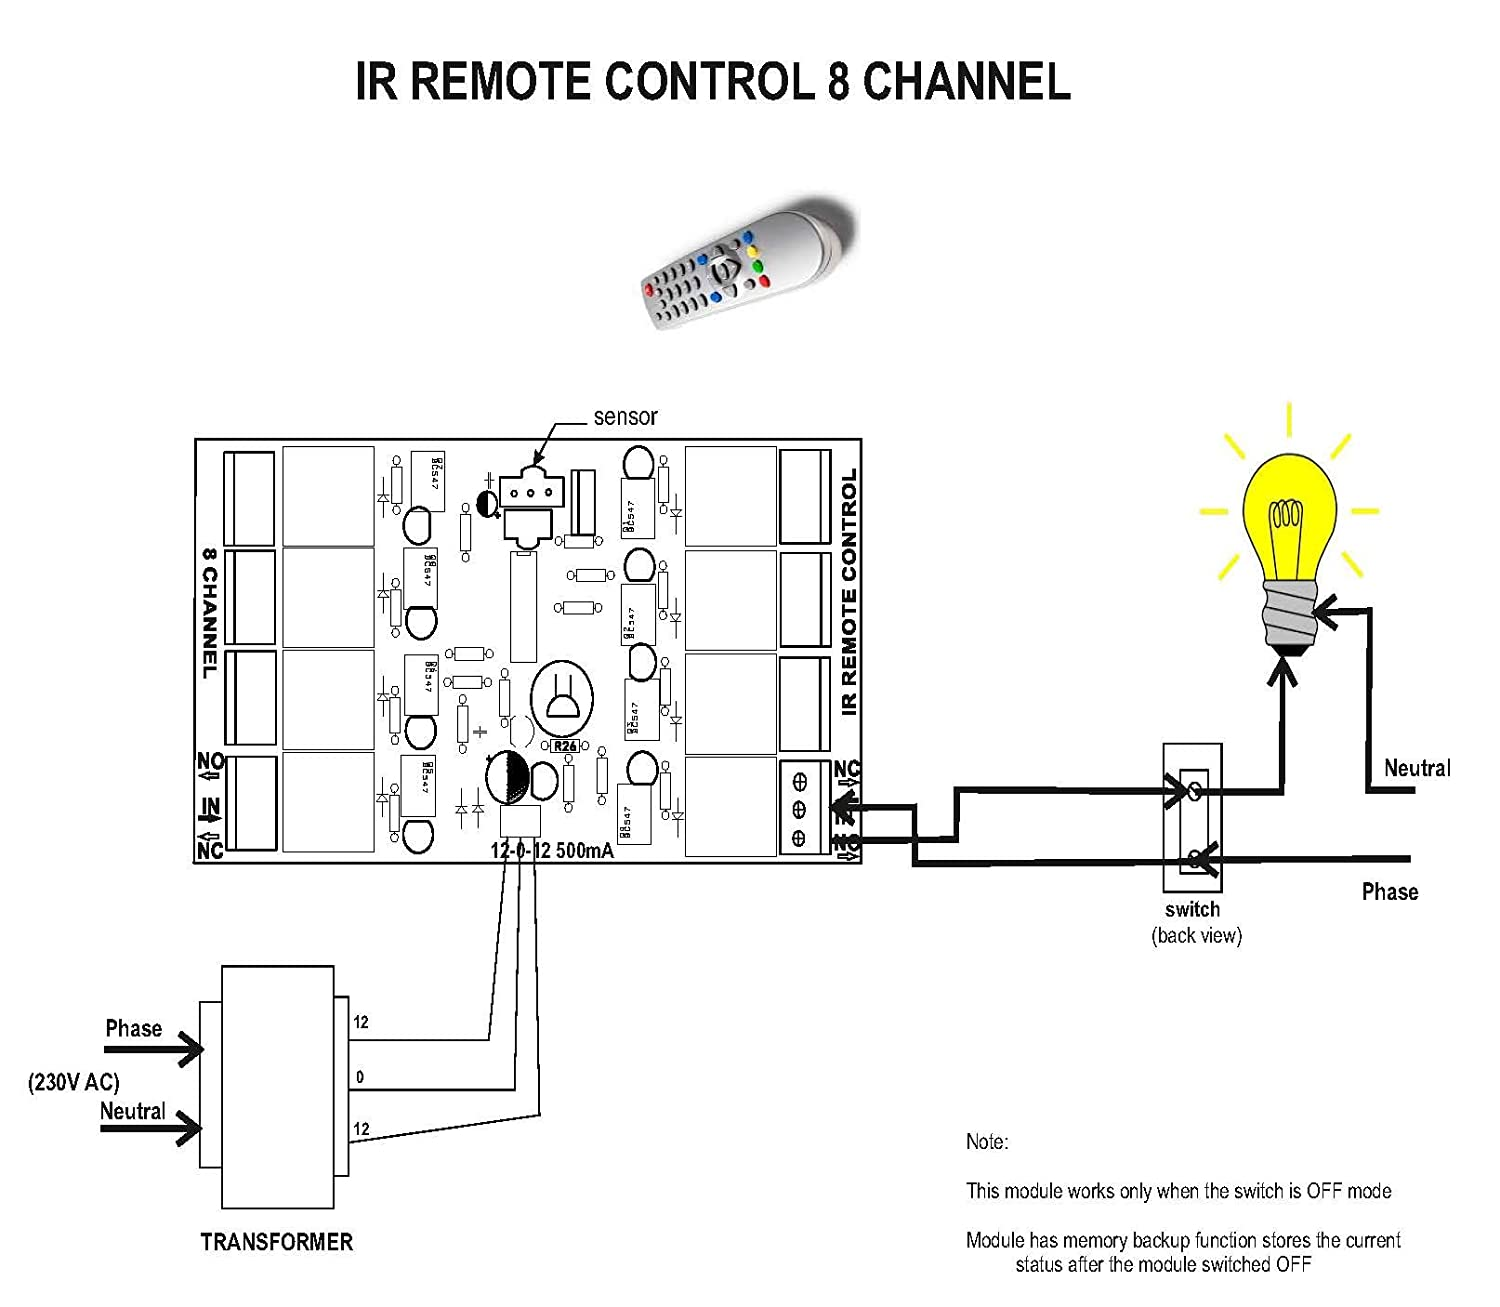 Buy Wireless Infrared Ir Remote Control 8 Channel Board Home Switch Circuit And Applications Industrial Automation Online At Low Prices In India